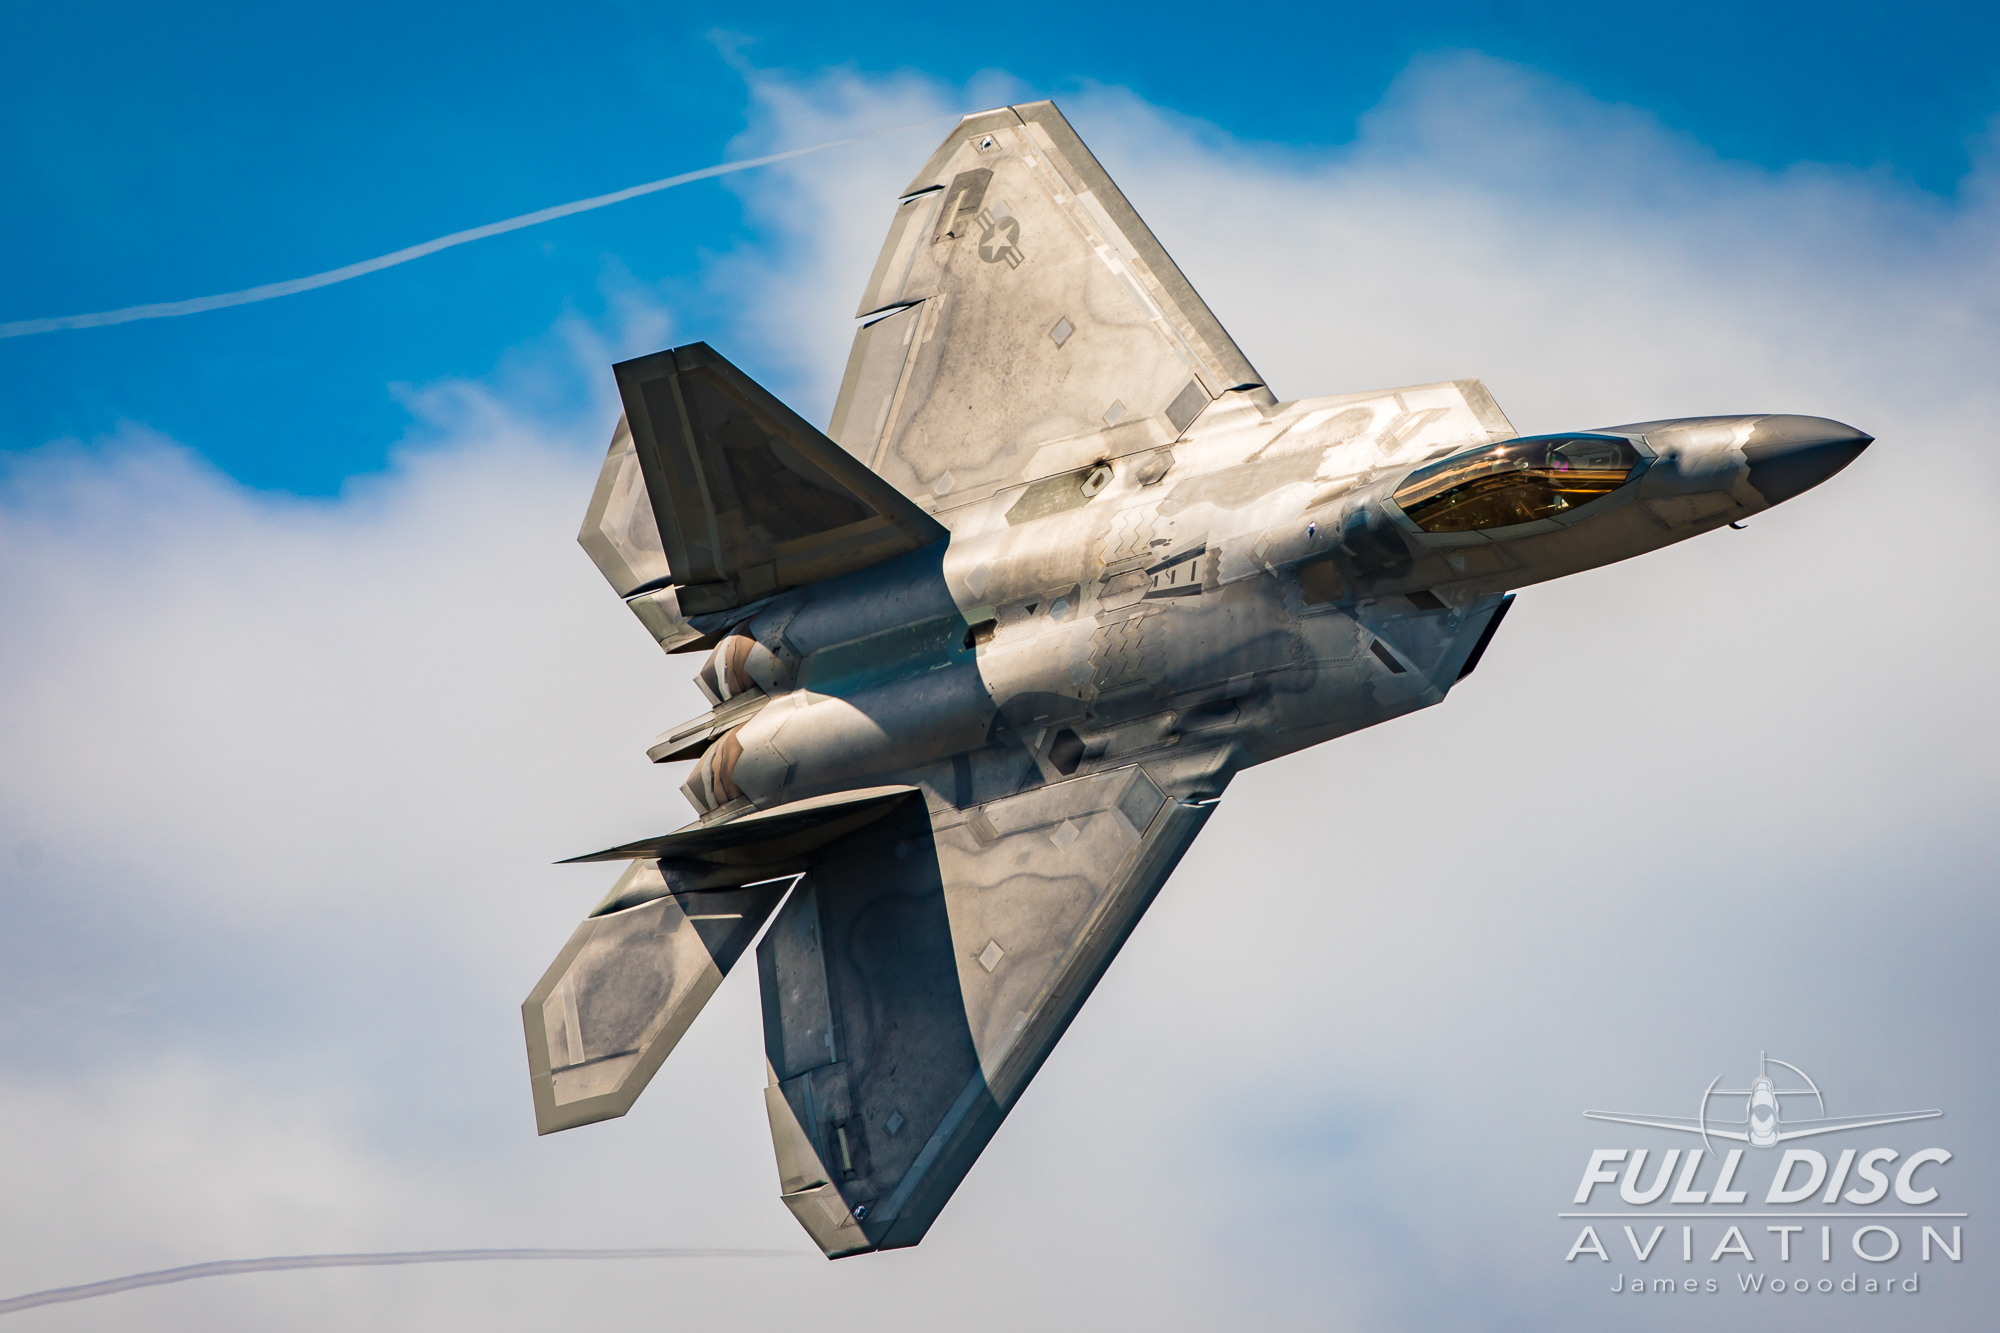 FullDiscAviation_JamesWoodard-September 21, 2018-70.jpg